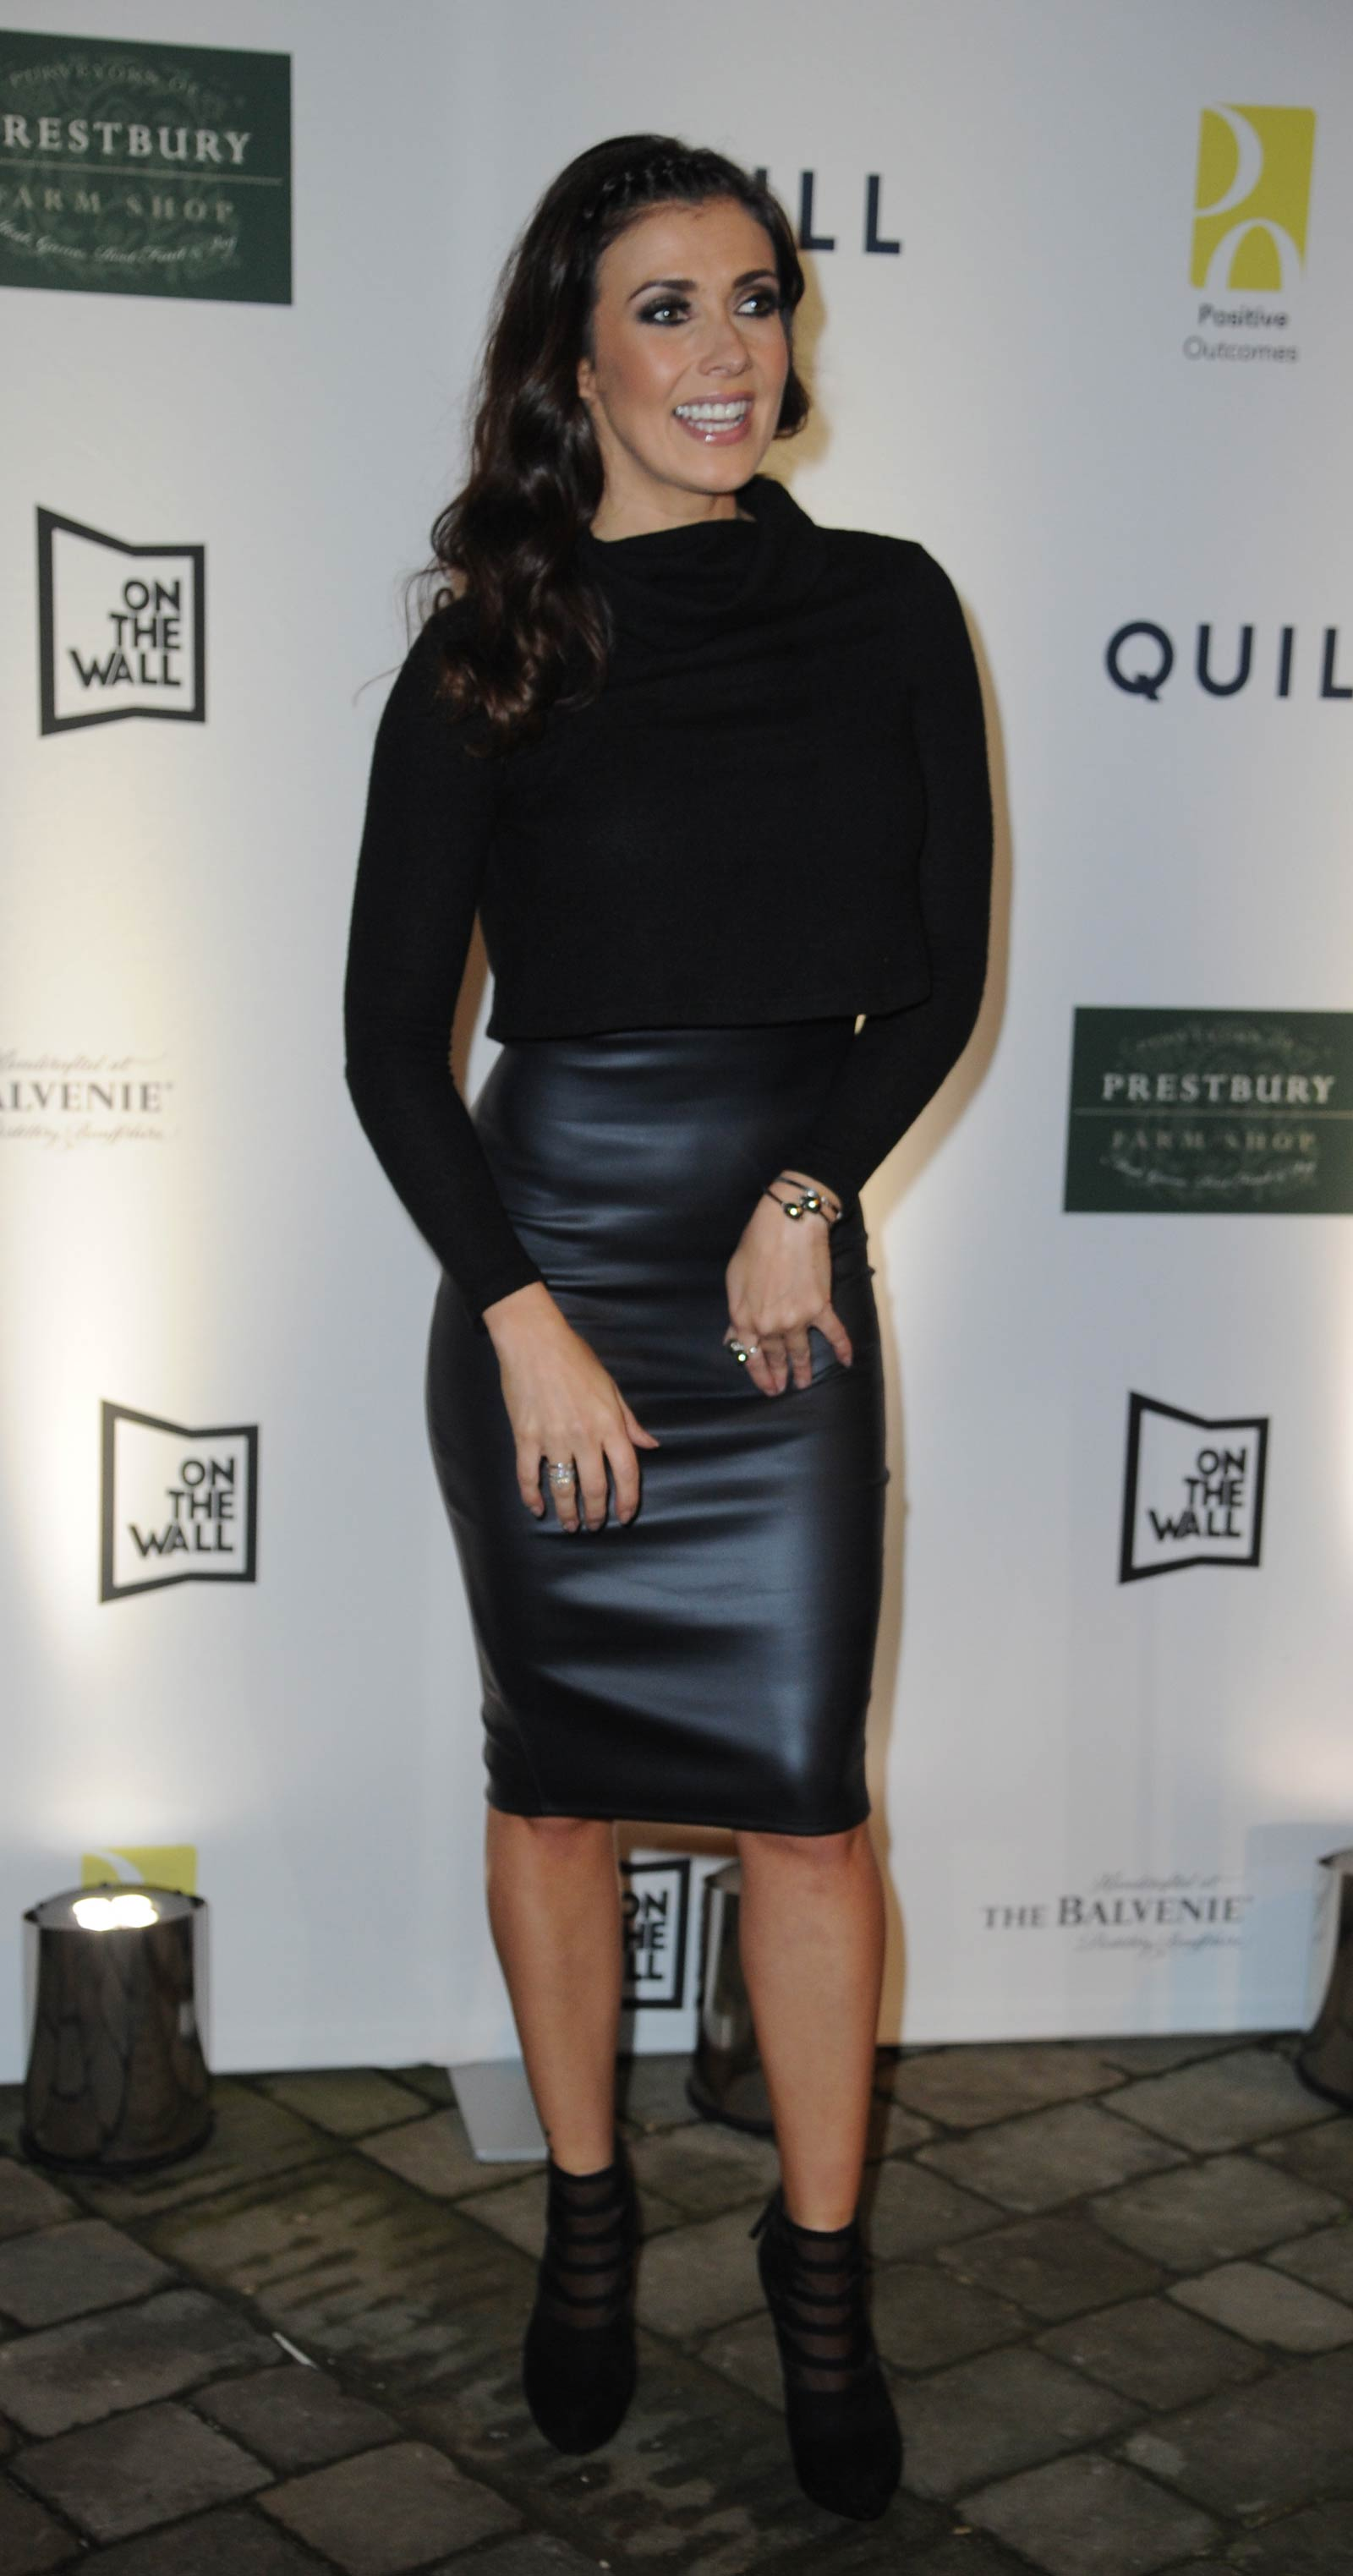 Kym Marsh attends Grand opening of Restaurant Quill